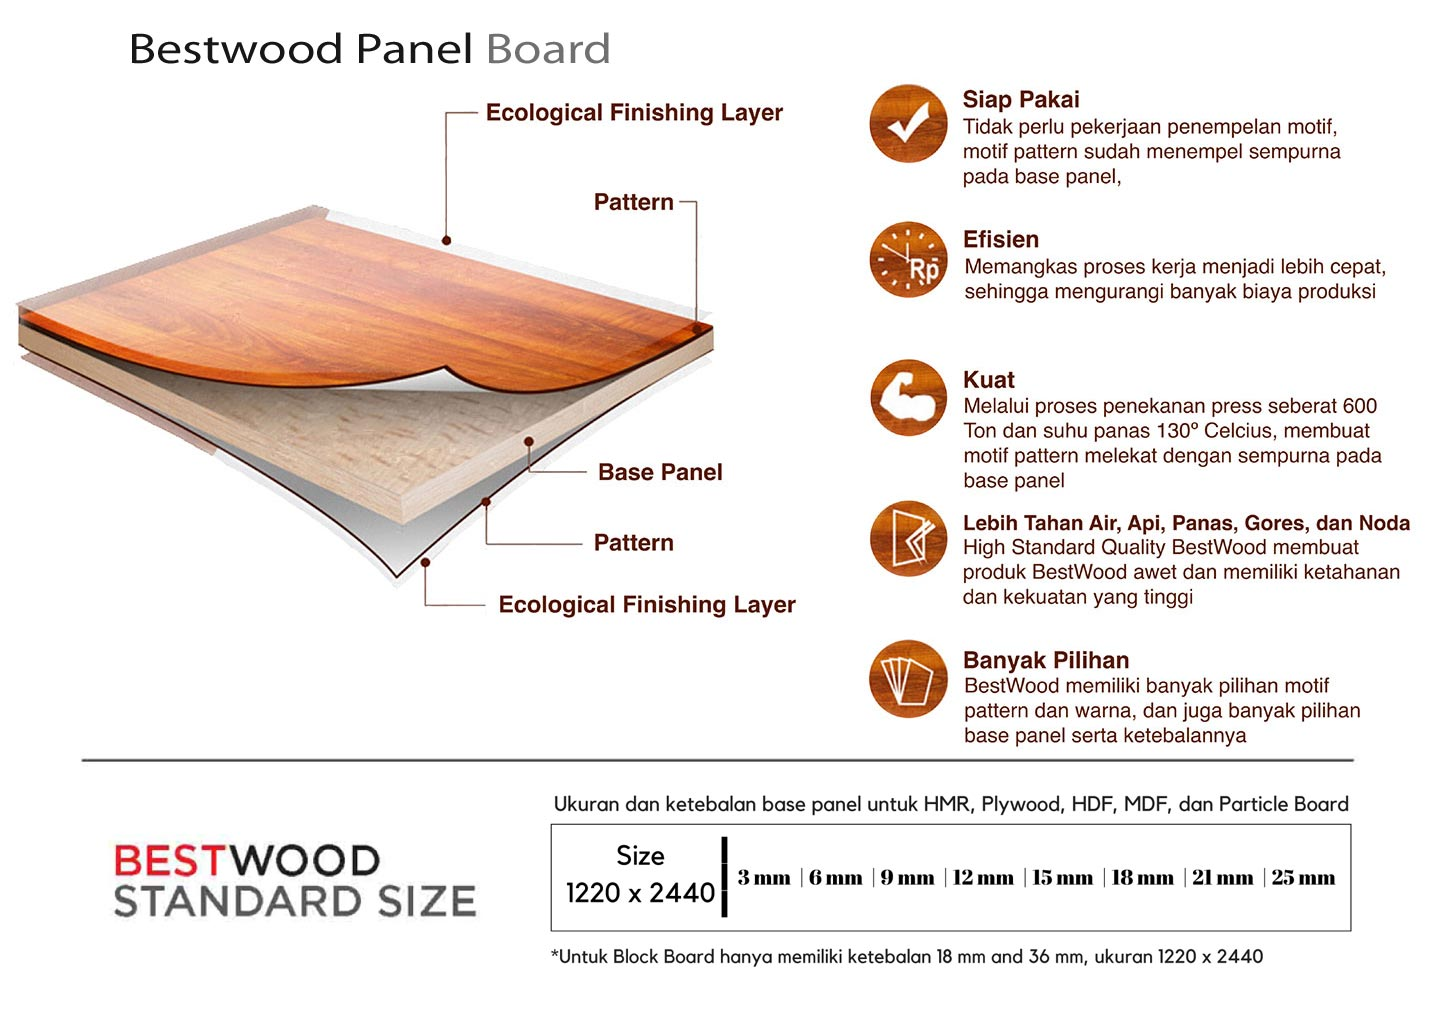 Ukuran Blockboard Bestwood Specification Bestwood